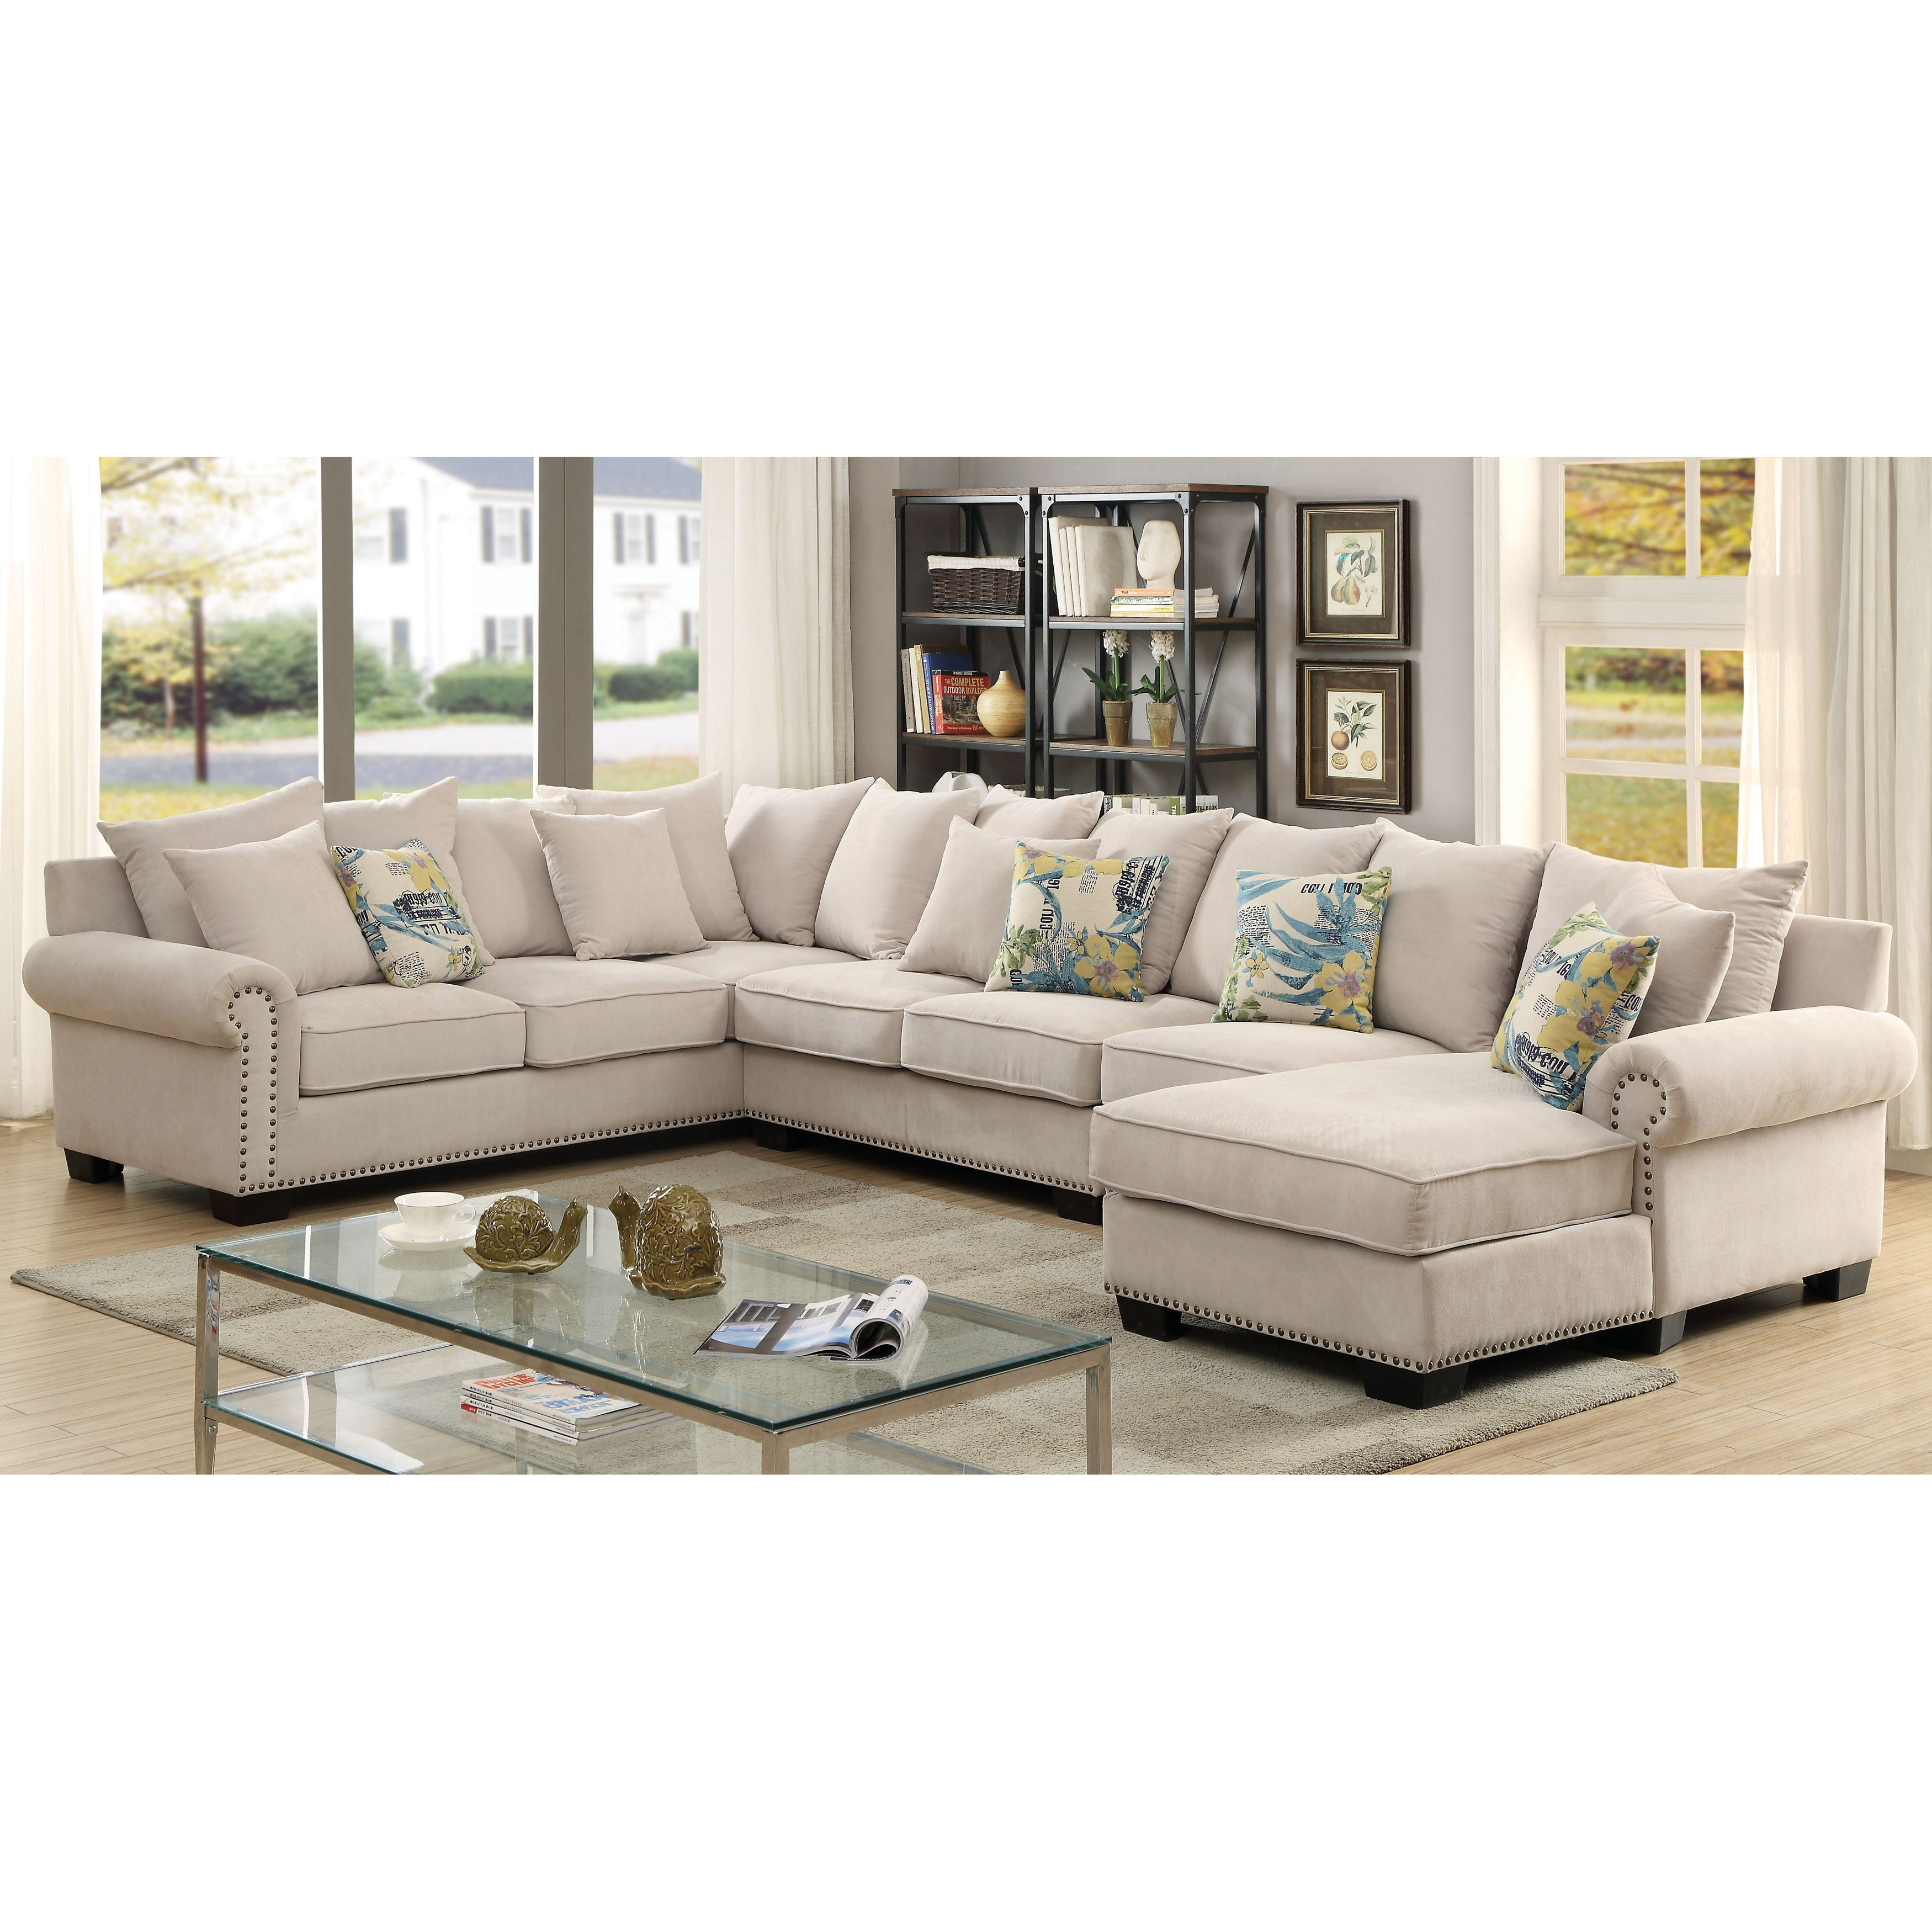 reclining brown sold sectionals crawford furniture sectional room under separately campania leather cindy pc living home pieces